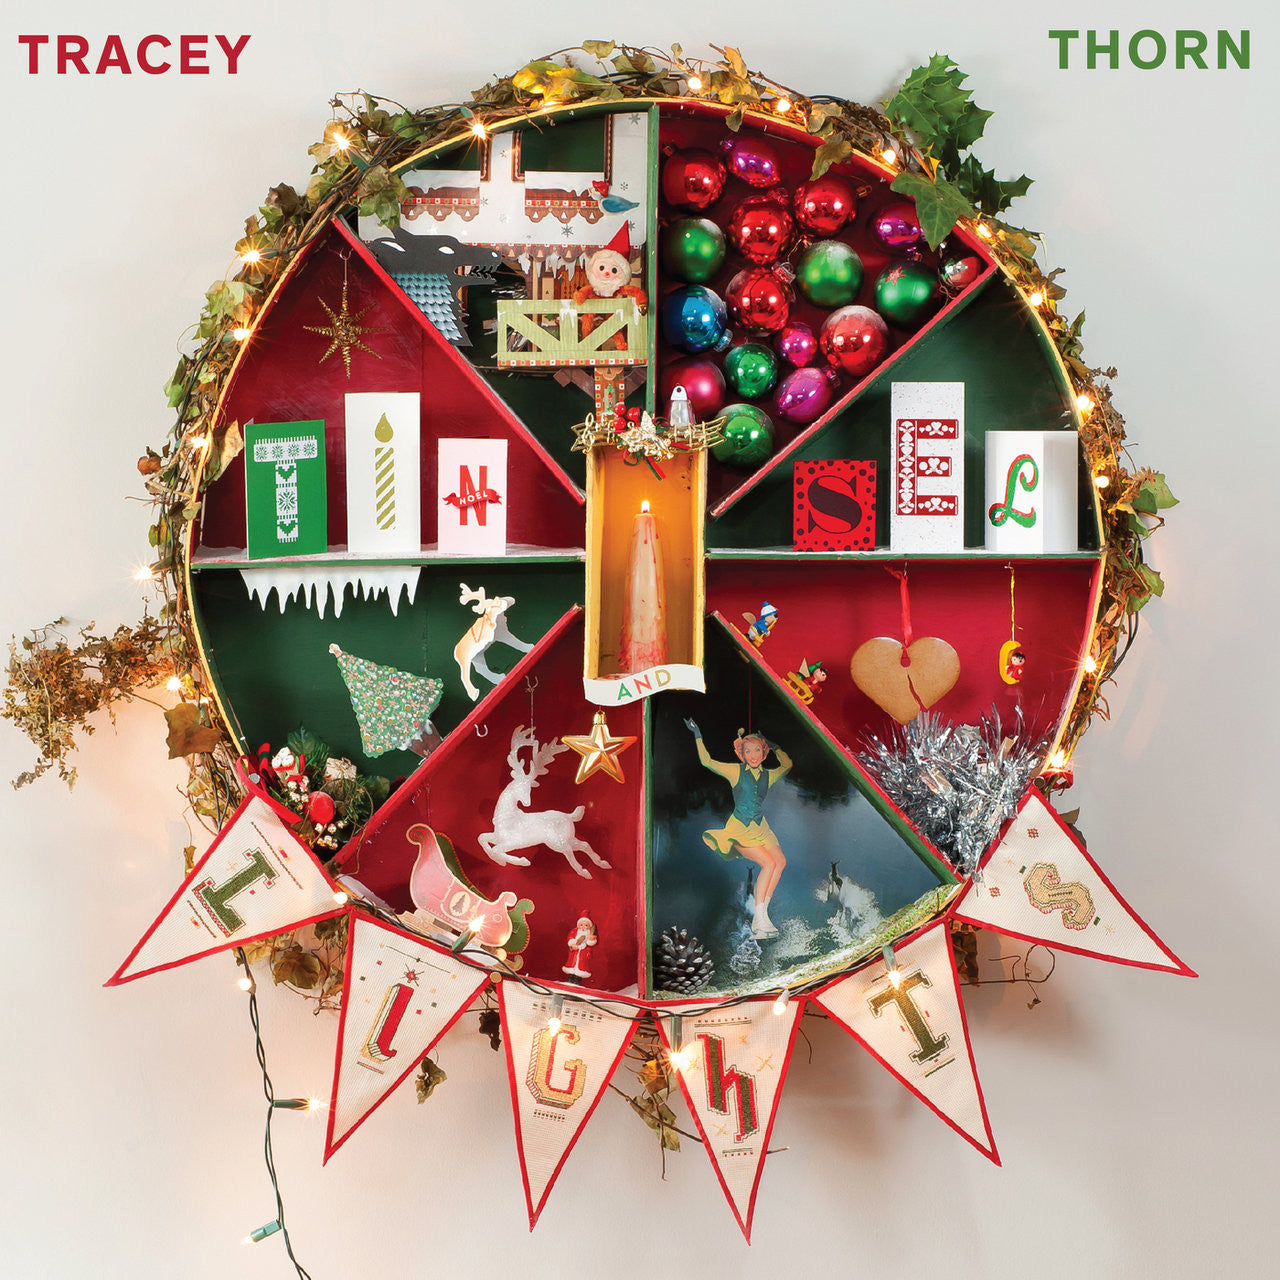 Tracey Thorn - Tinsel and Lights (Deluxe Vinyl Box)